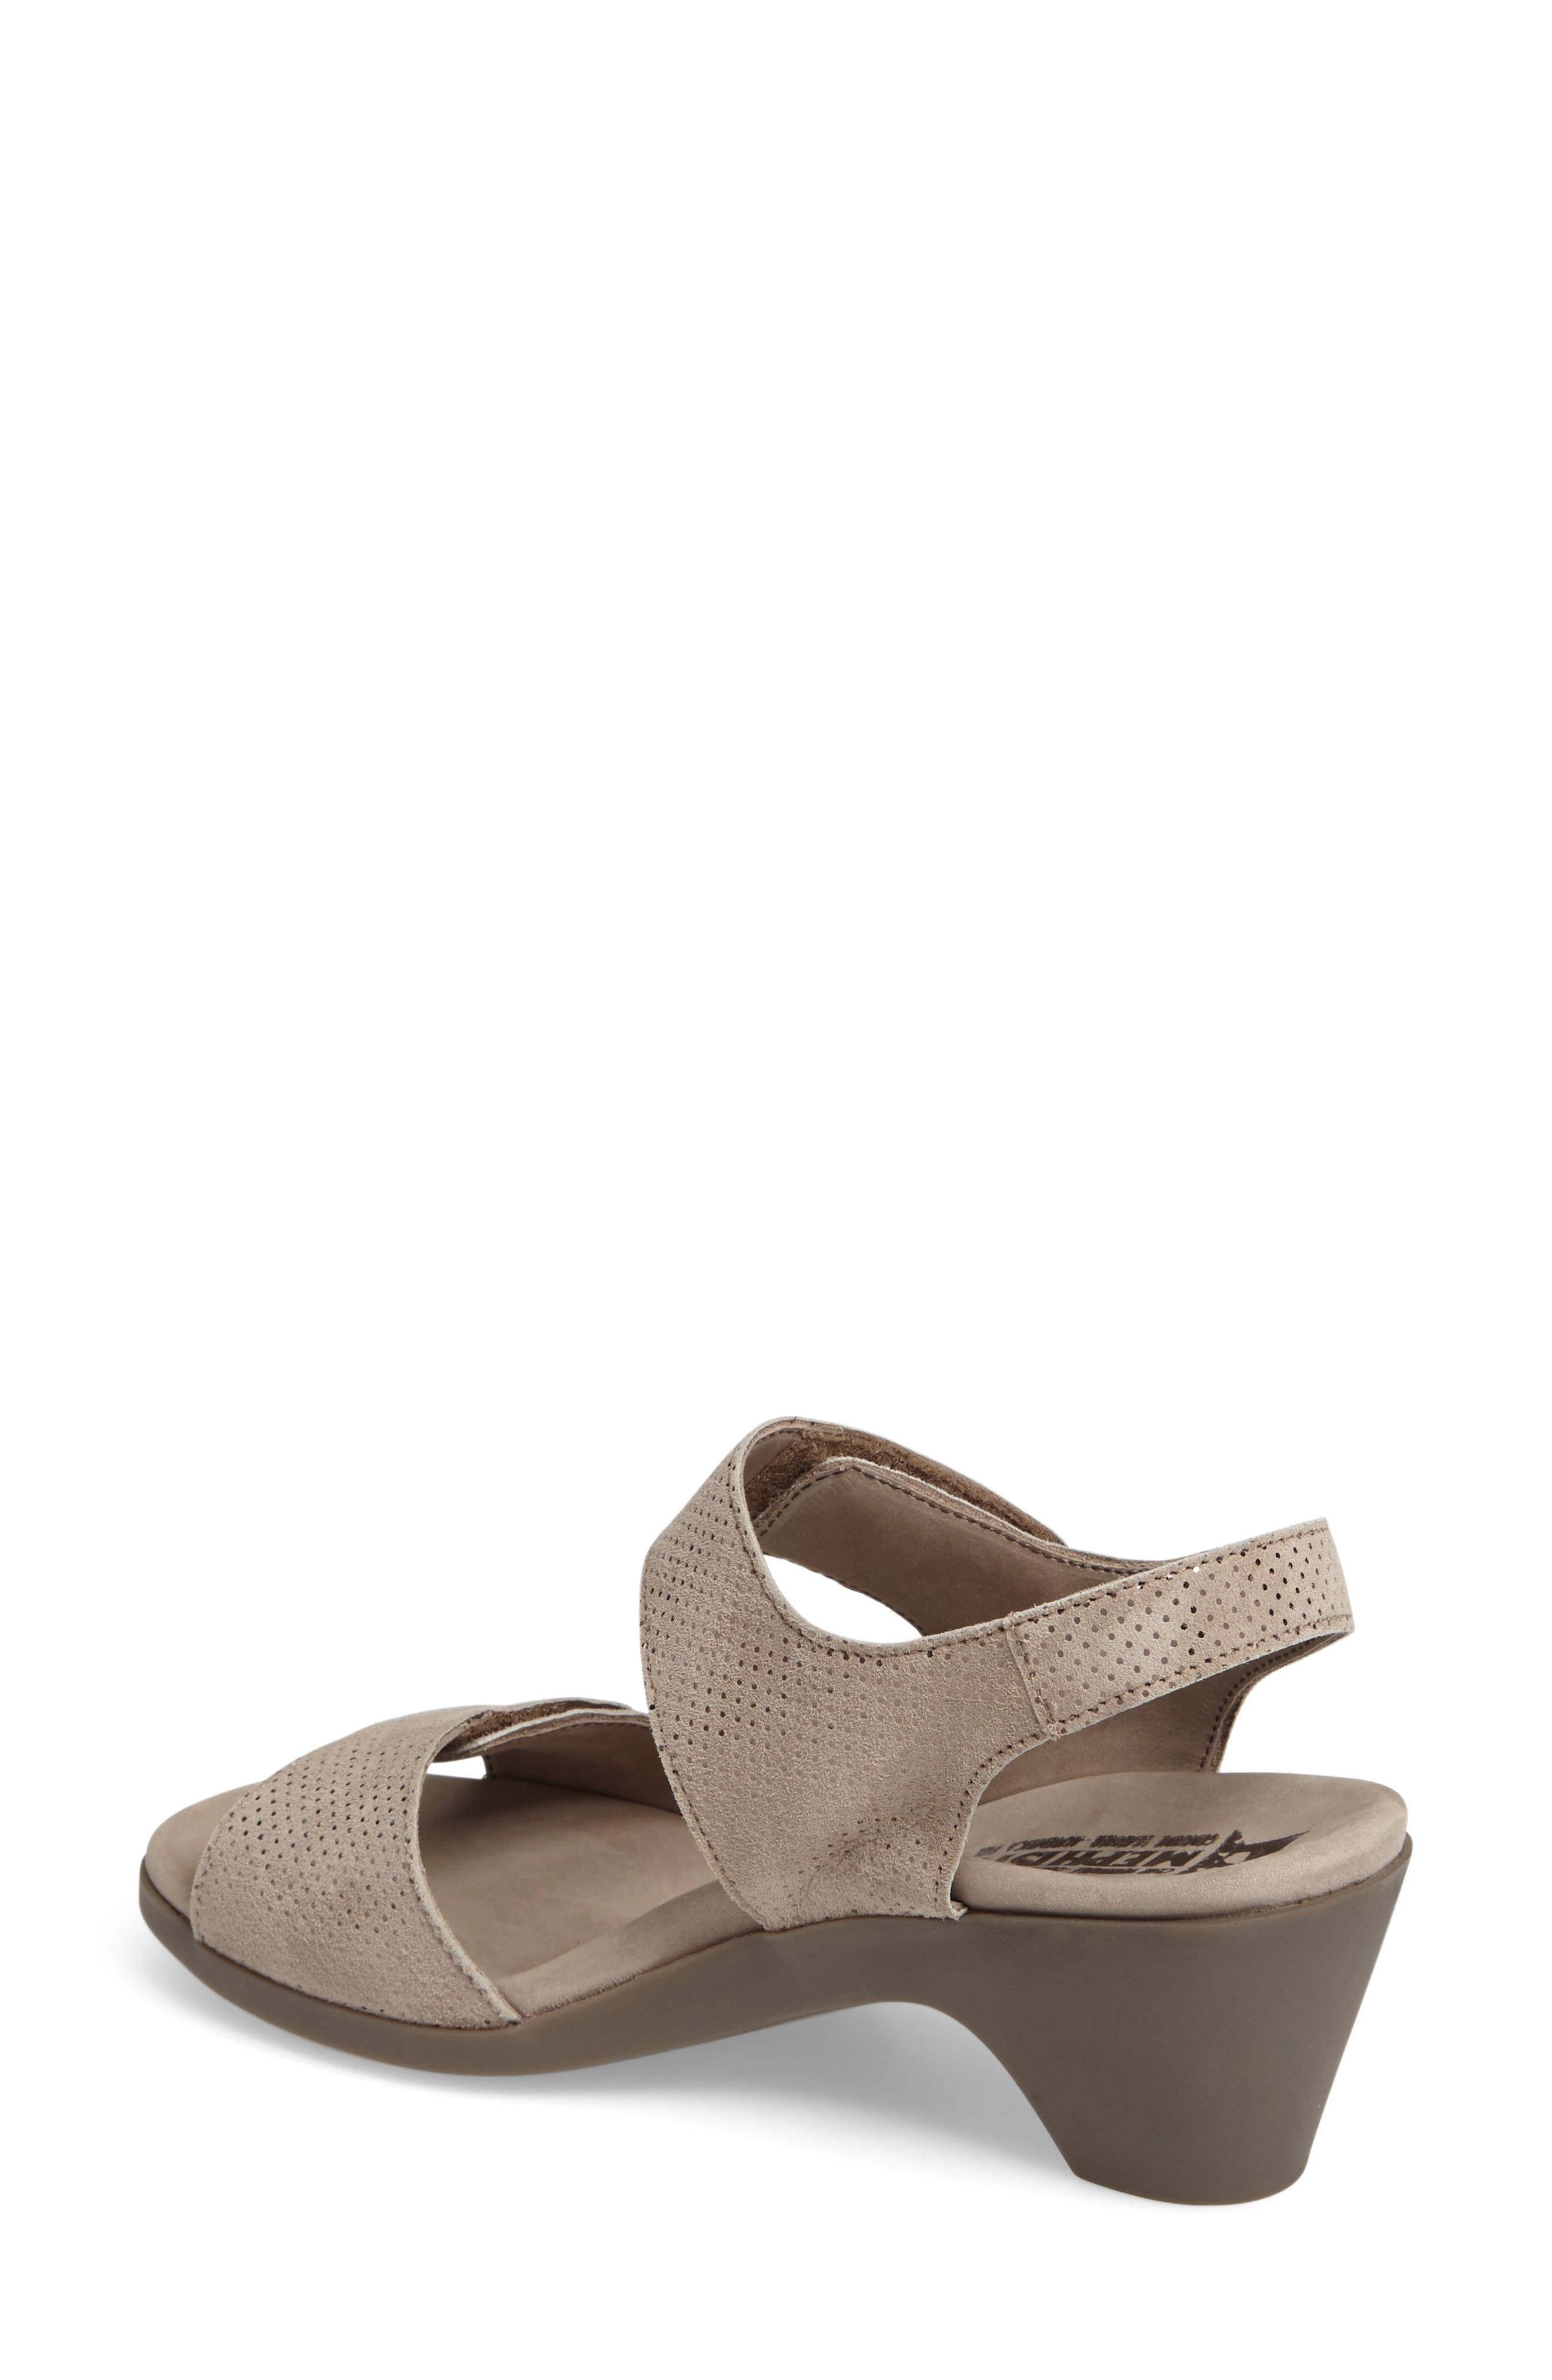 Cecila Sandal,                             Alternate thumbnail 4, color,